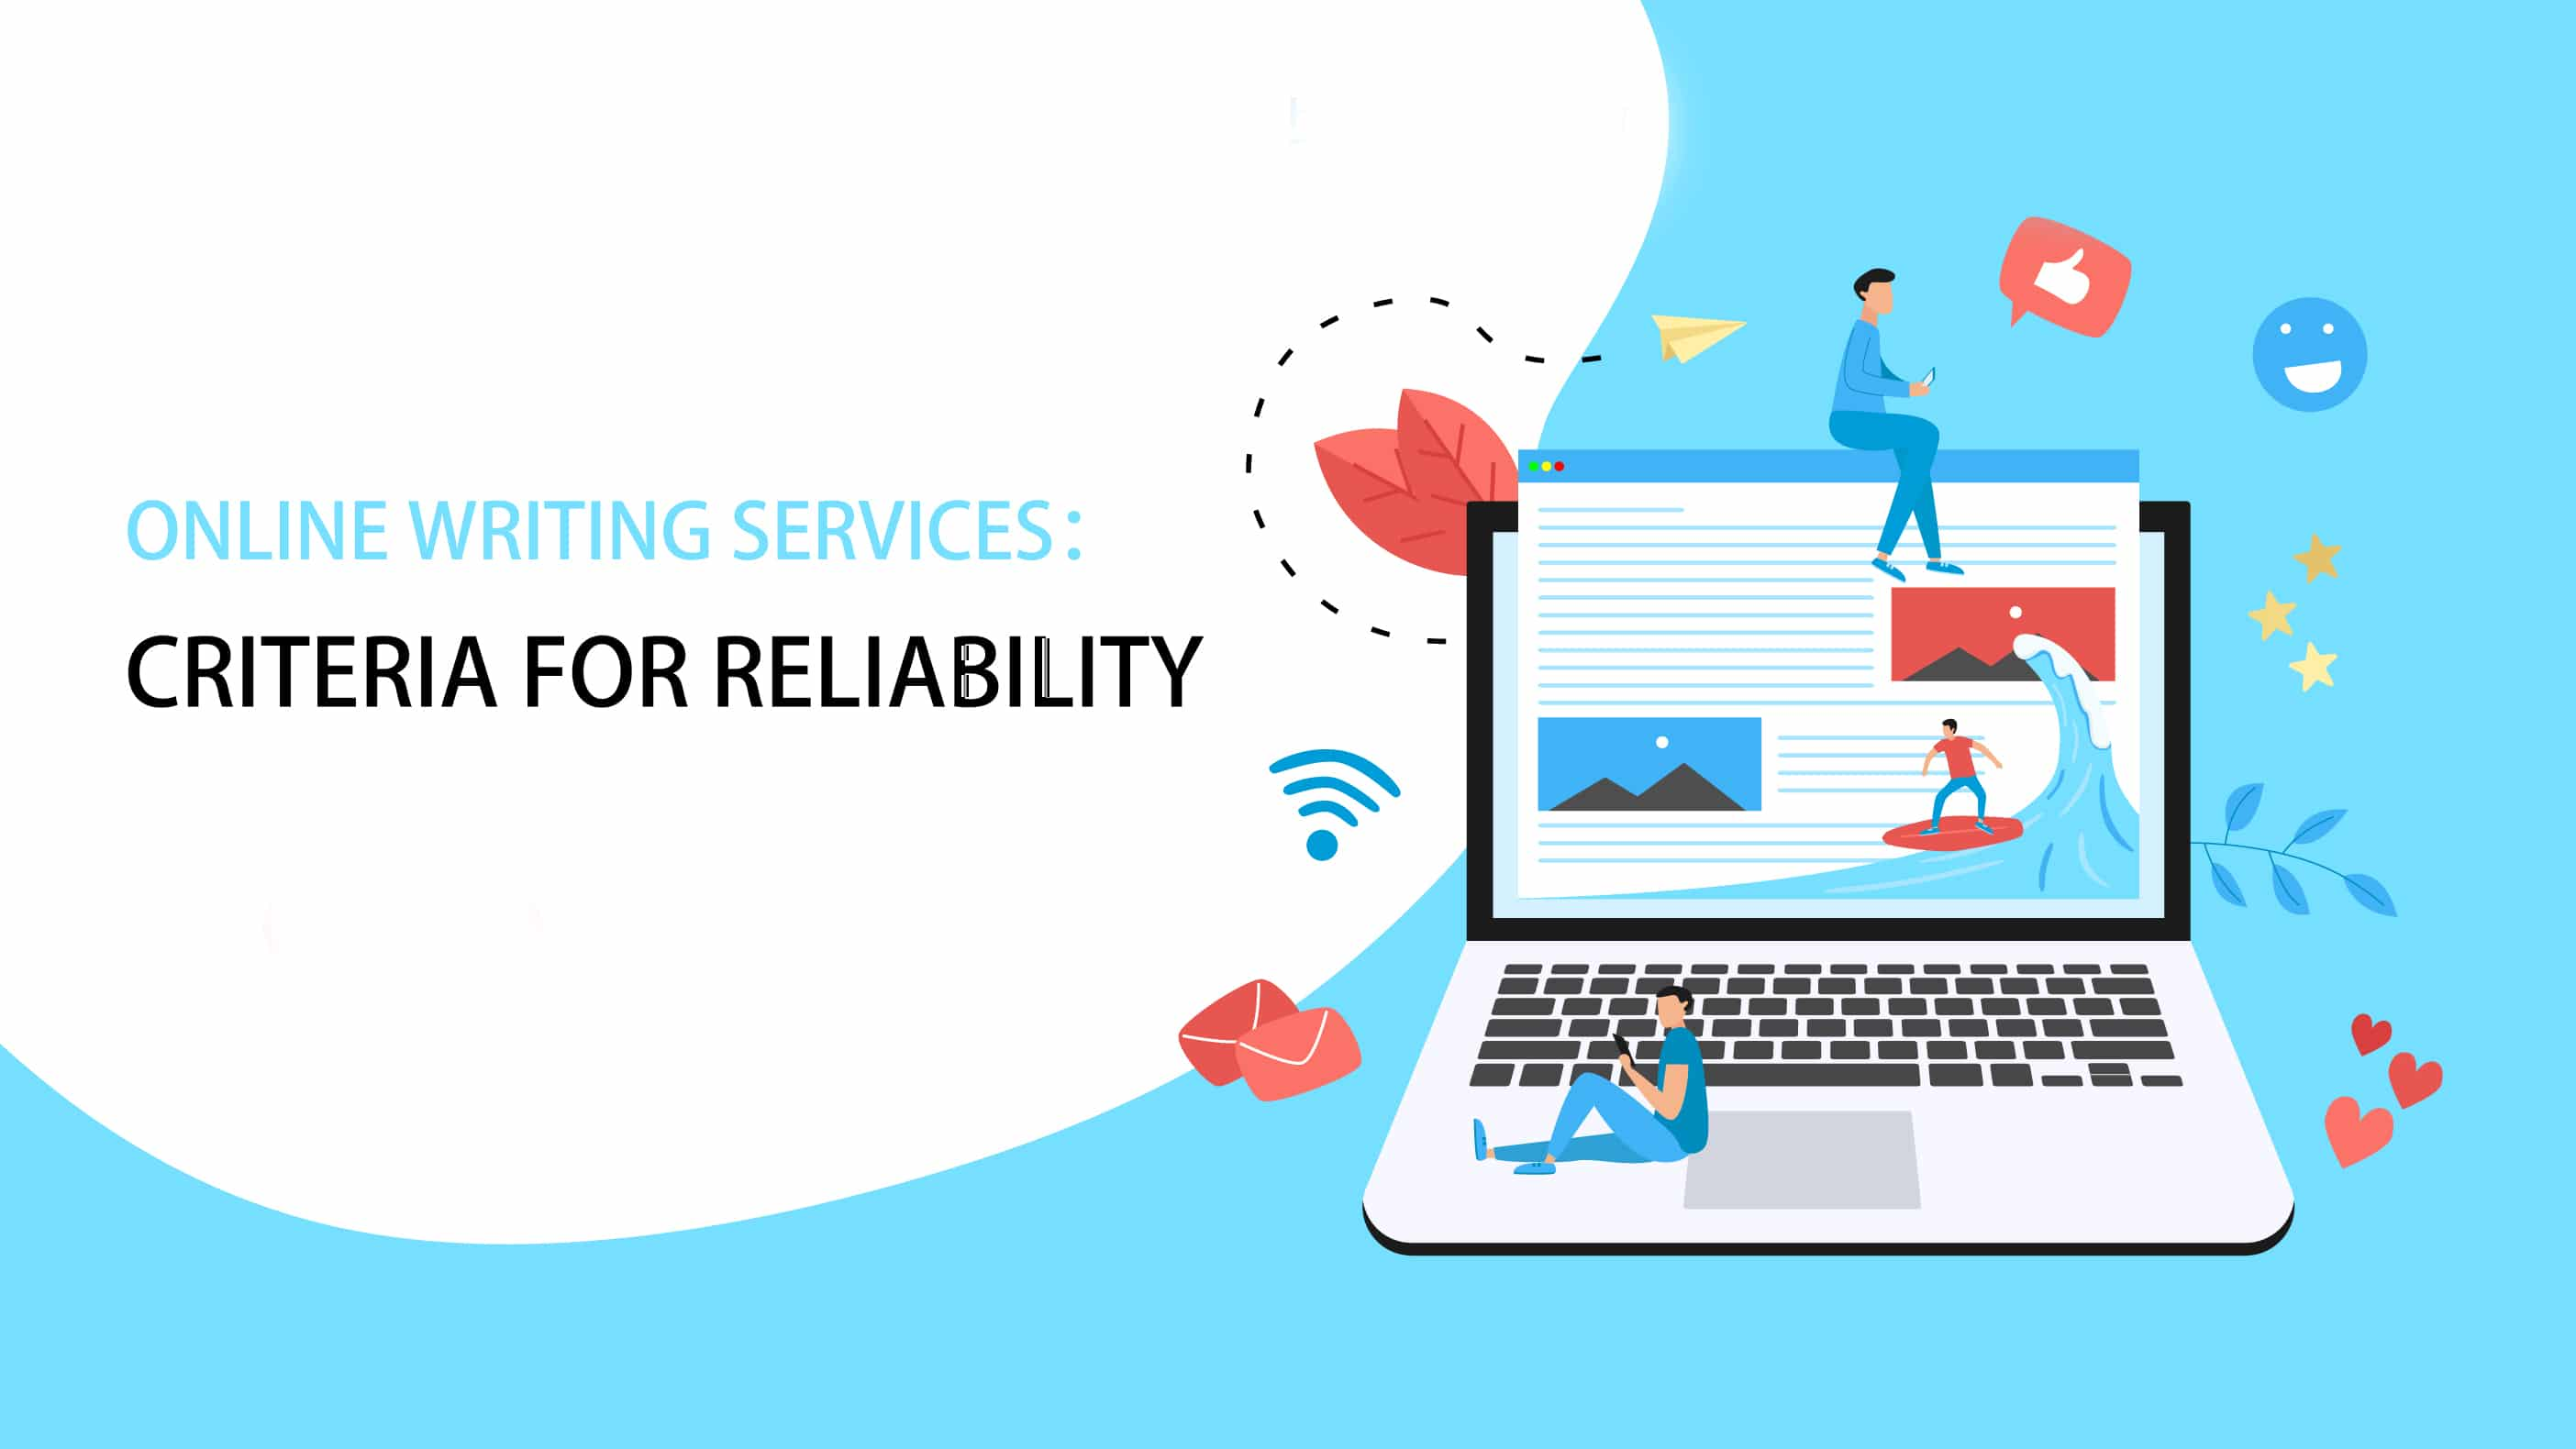 Online Writing Services: Criteria for Reliability